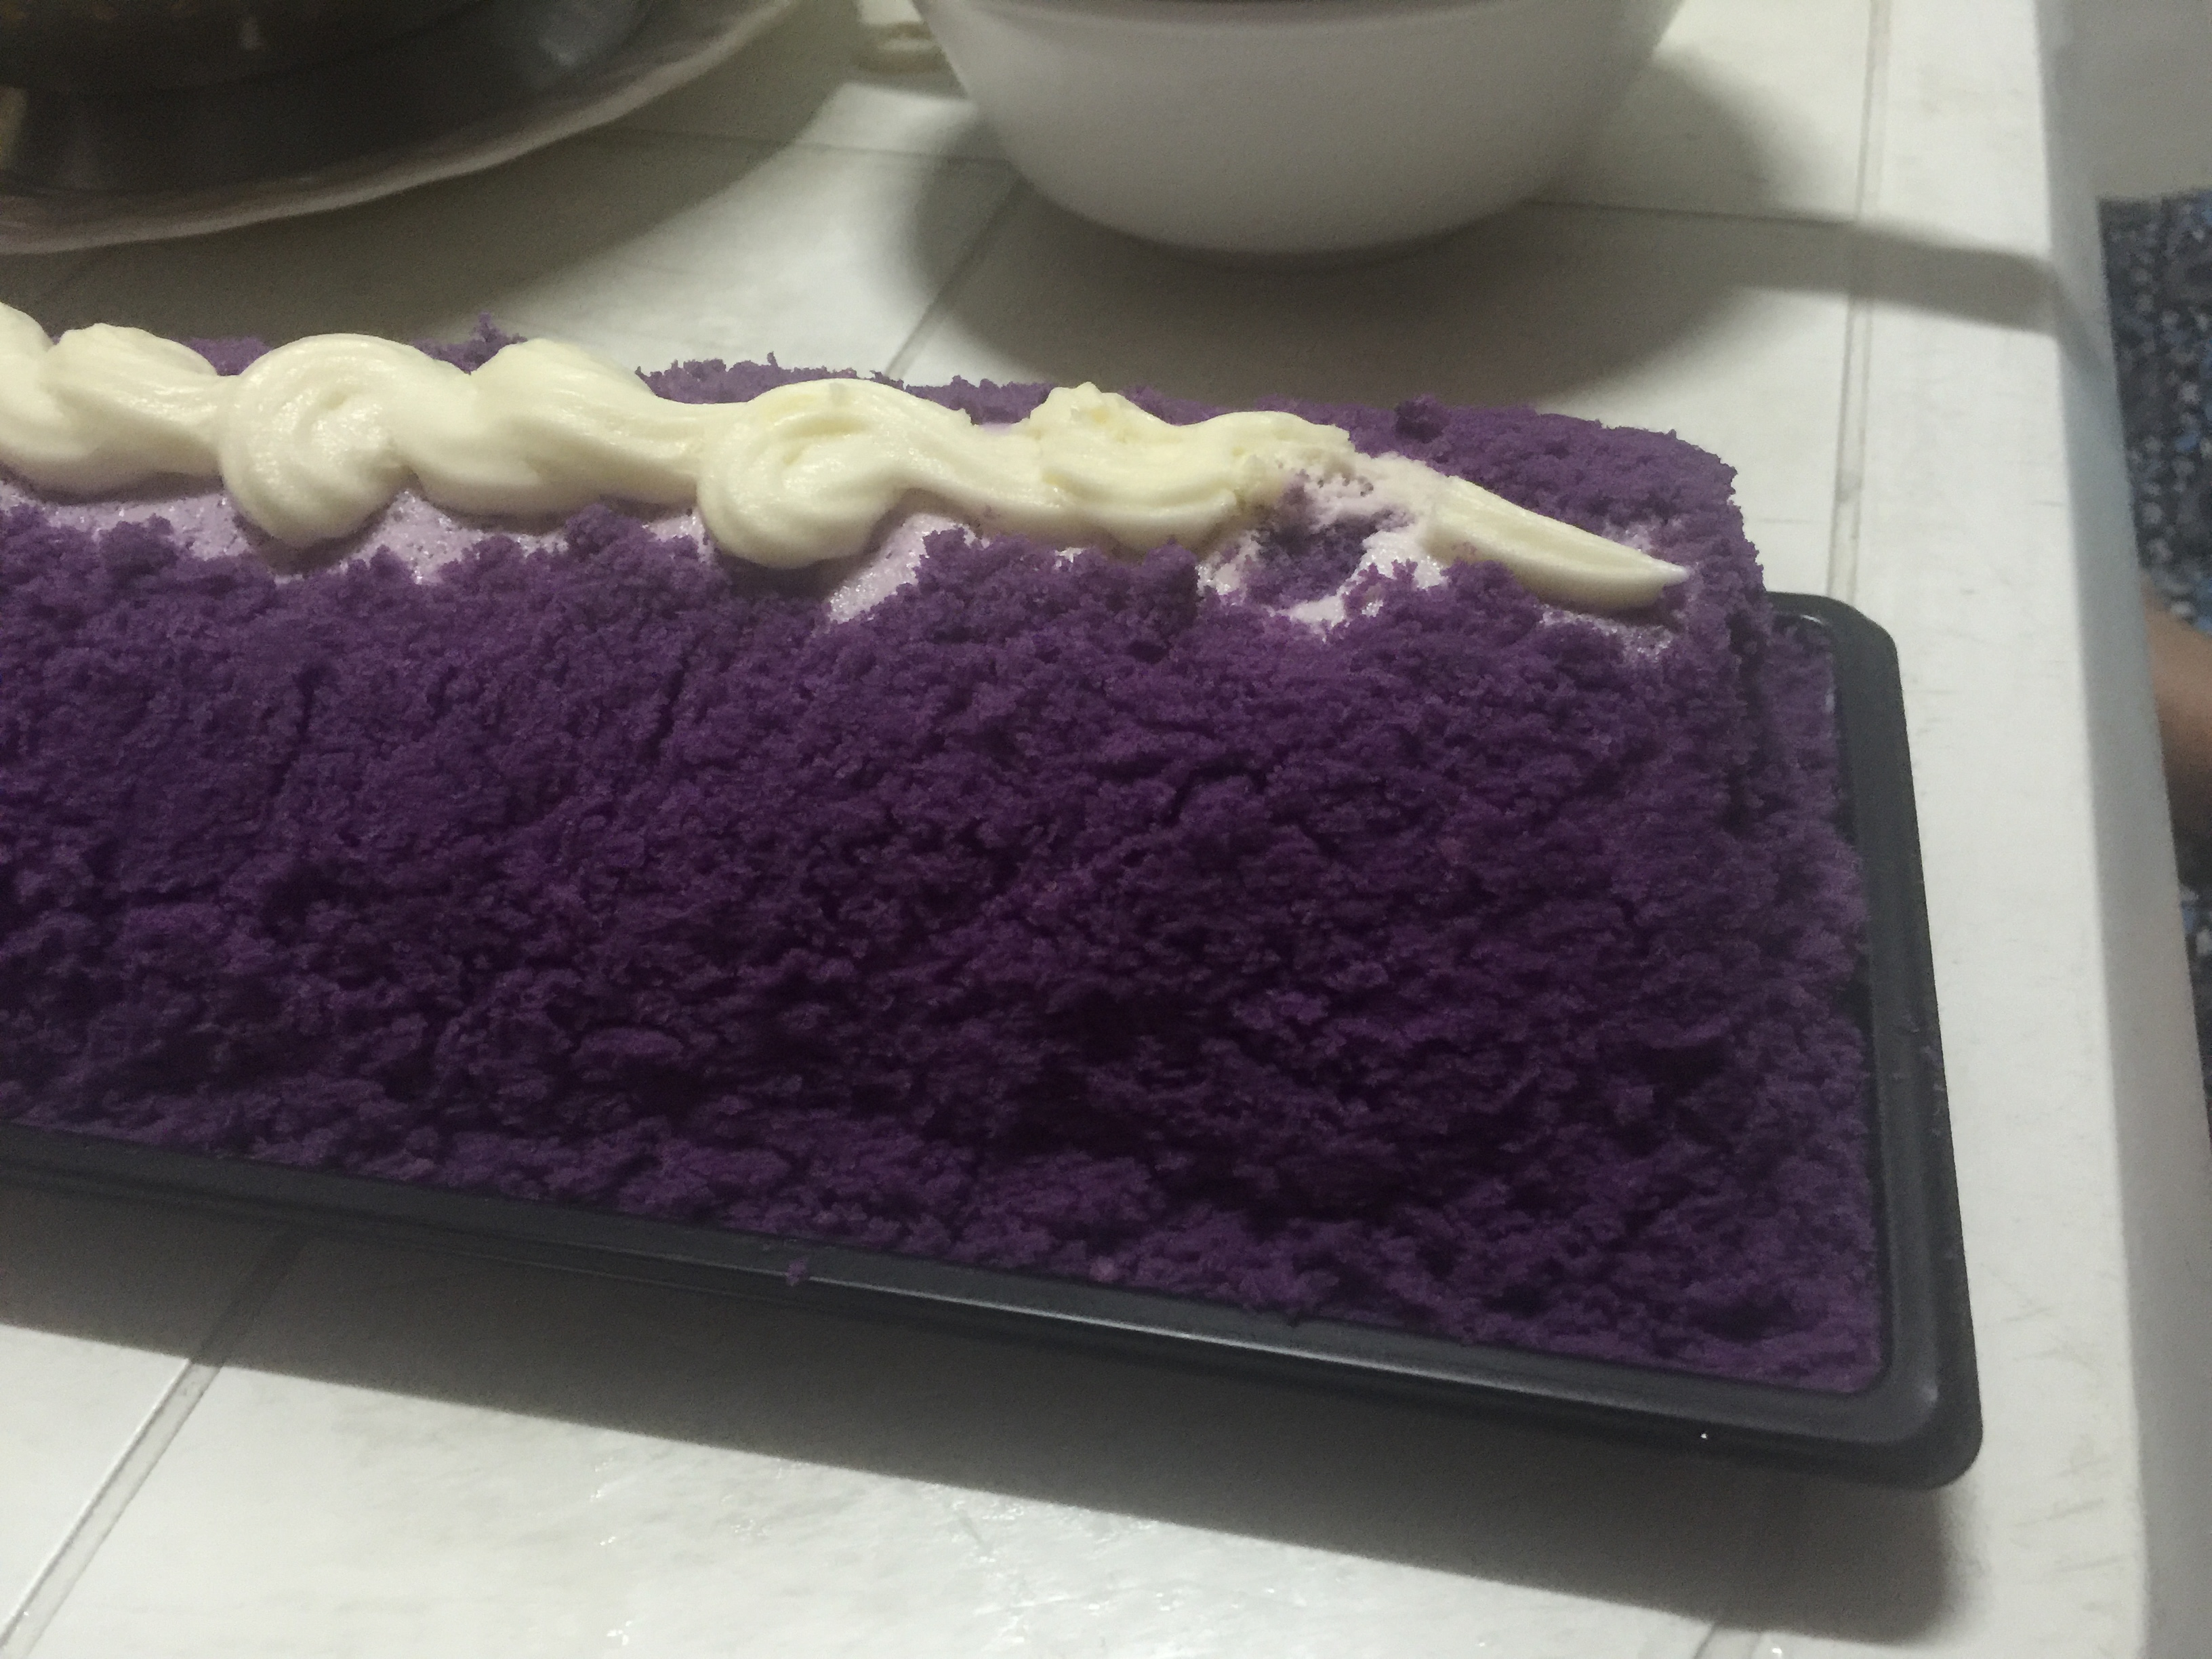 You want color? Here's Ube (purple yam) cake. Yummy!